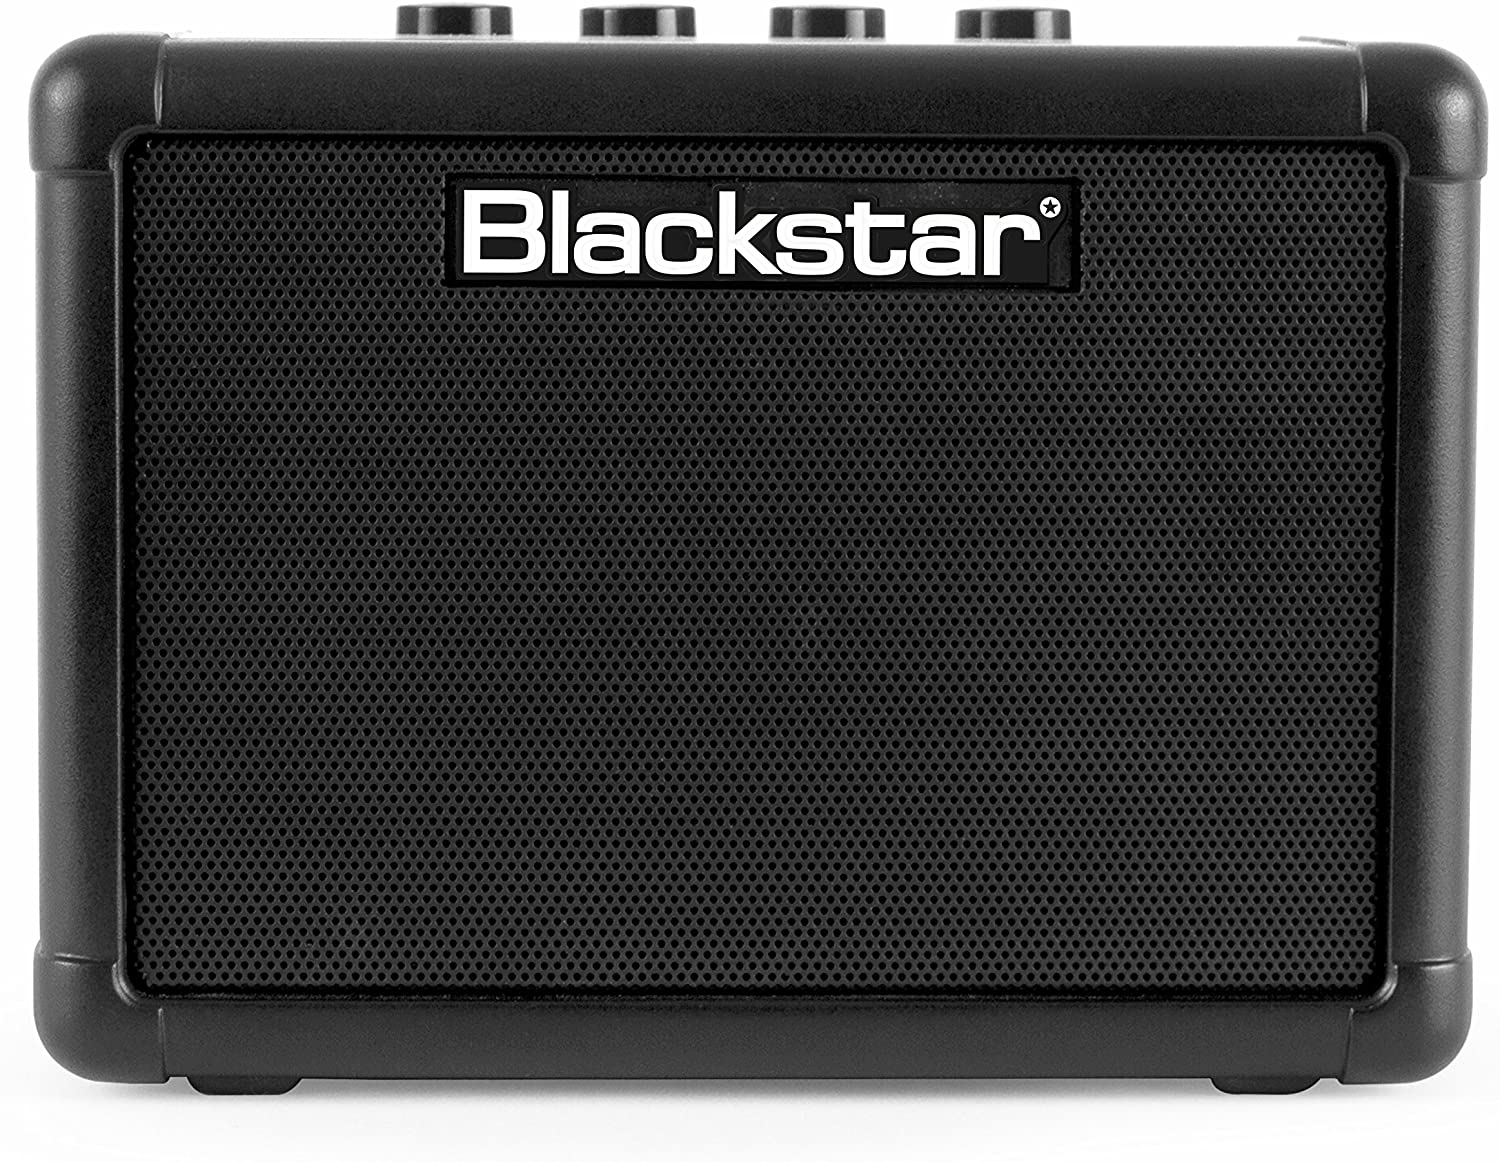 Blackstar Electric - Electric Guitar Amplifiers